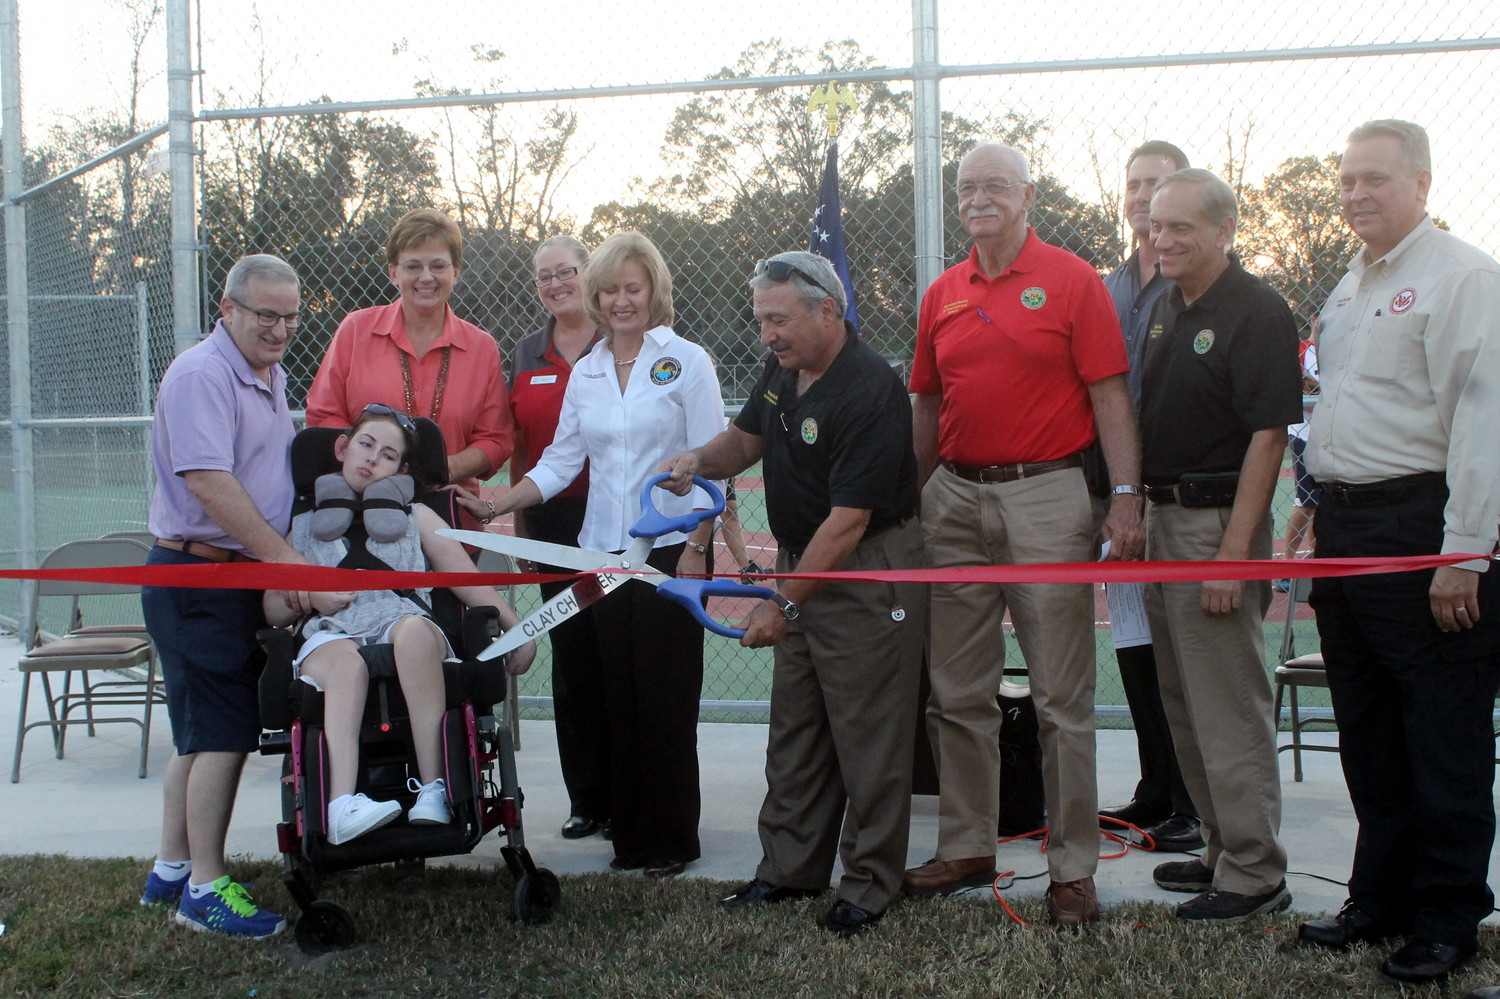 "Clay County Commissioner Wayne Bolla cuts ribbon to officially open the Moody Avenue Park baseball field while officials look on in the Nov. 7 ceremony. At right is former county commissioner Harold Rutledge who, in 2007, presented the idea for the ballpark to the commission in hopes of establishing a Miracle League team here. ""I was overwhelmed yesterday at the park; it was more than I could have ever imagined and hoped for the kids in our county who have special needs. It's going to be nice to go out there and see kids play together, regardless of their ability,"" Rutledge said. From left are Brian McElyea, Brienna McElyea, Jill McElyea, Ronna Smith, Diane Hutchings, Bolla, County Commissioner Gayward Hendry, James Holdhouse and County Commissioner Mike Cella."